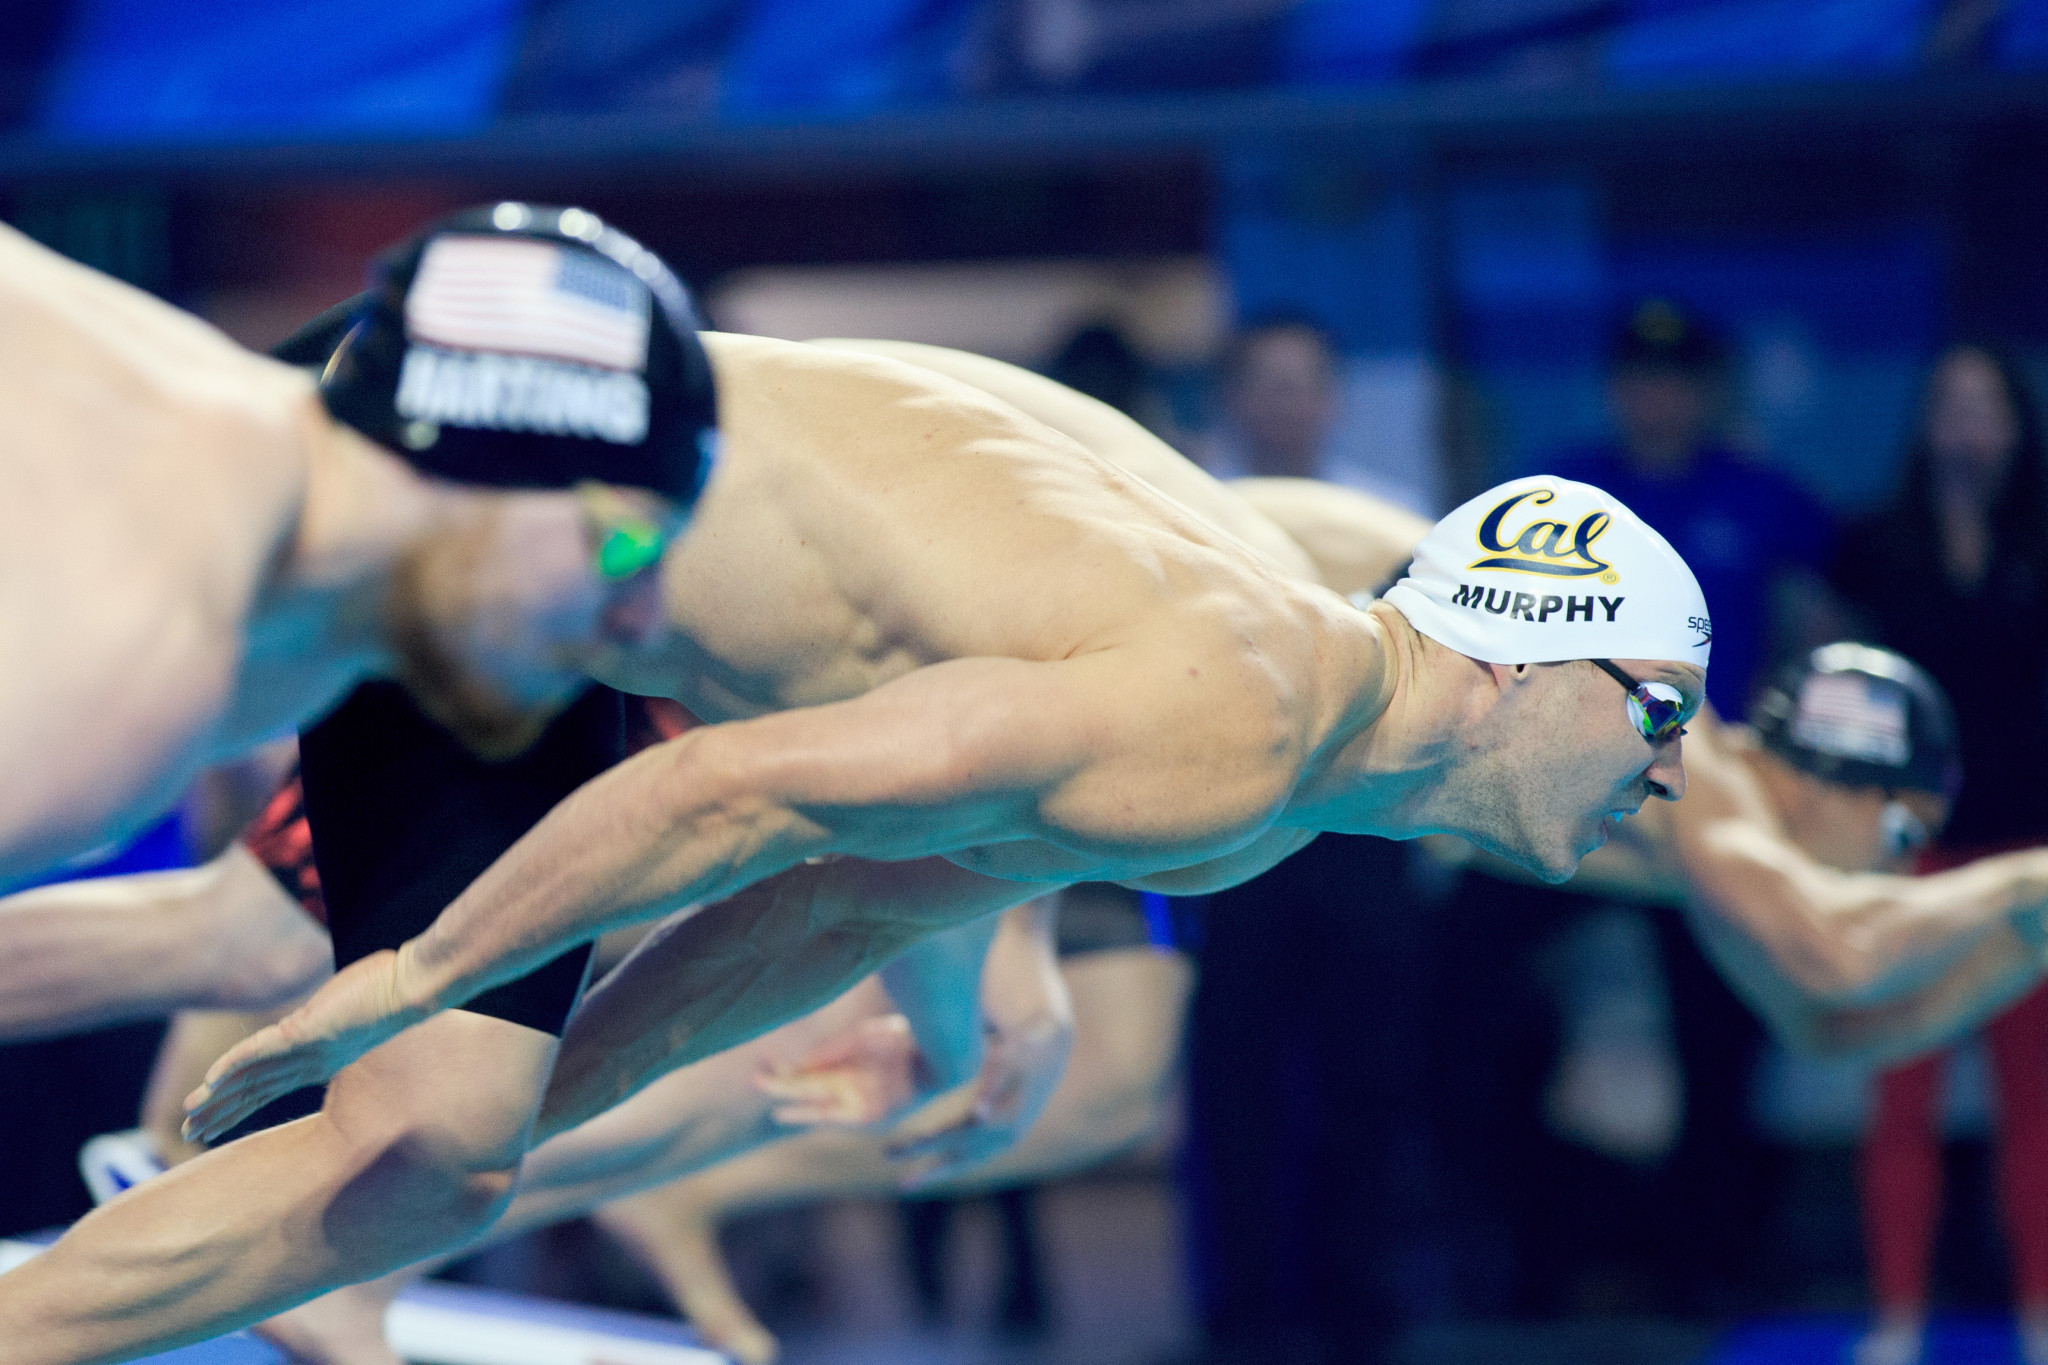 Three-time Olympic gold medallist Ryan Murphy competed at the FINA Champion Swim Series in Indianapolis this year, but he won't be back there in 2020 ©Getty Images